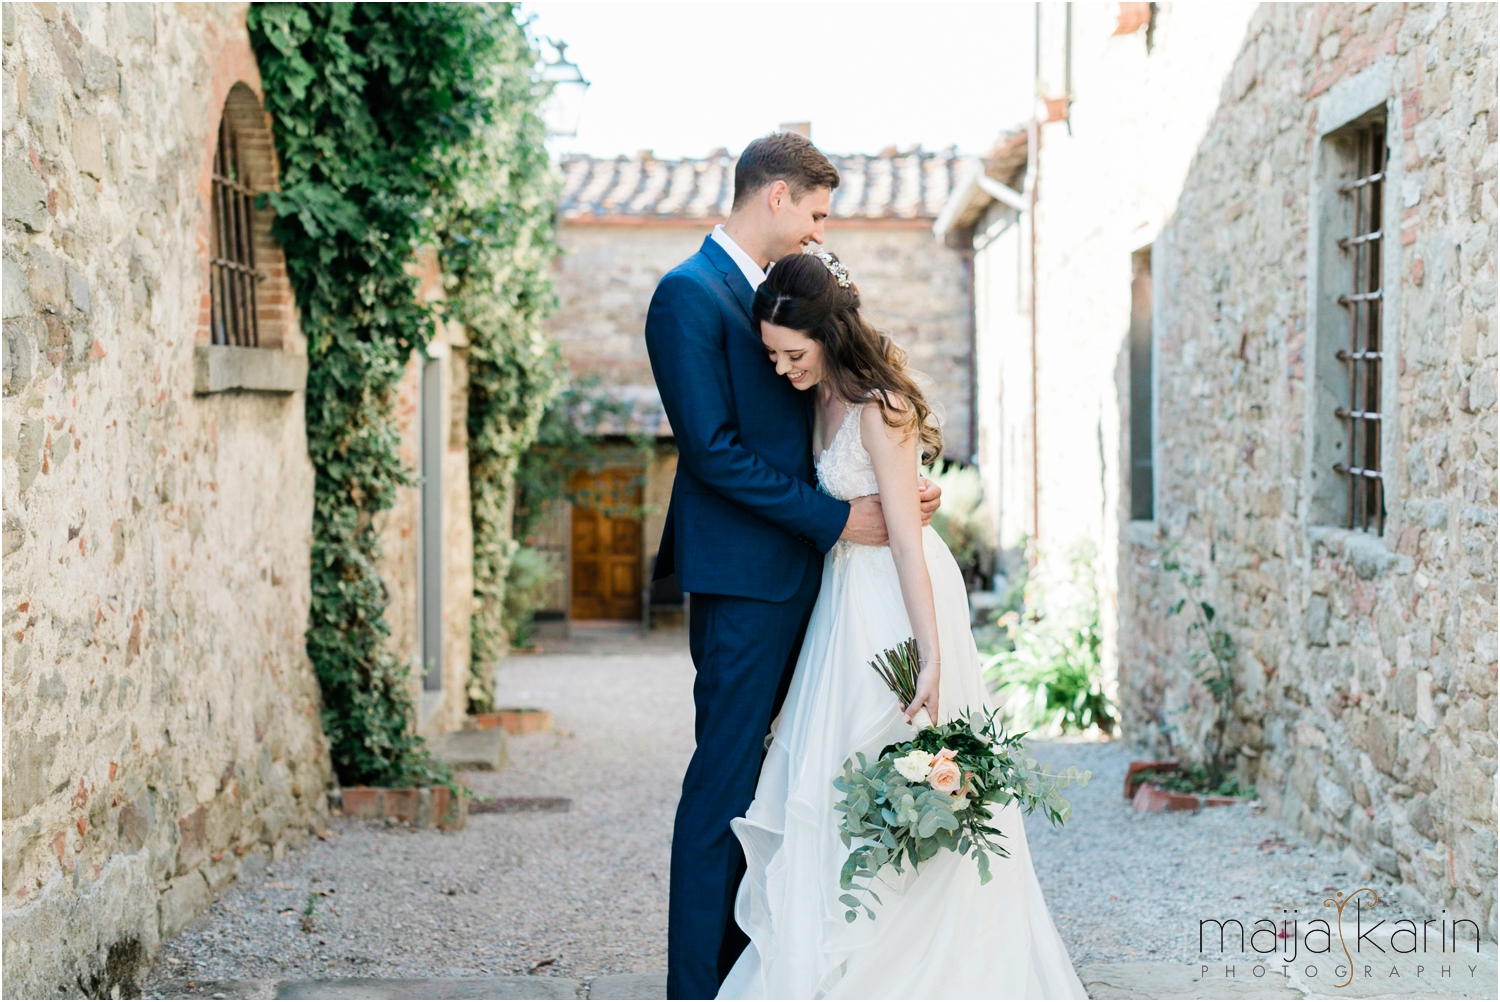 Castelvecchi-Tuscany-Wedding-Maija-Karin-Photography_0025.jpg